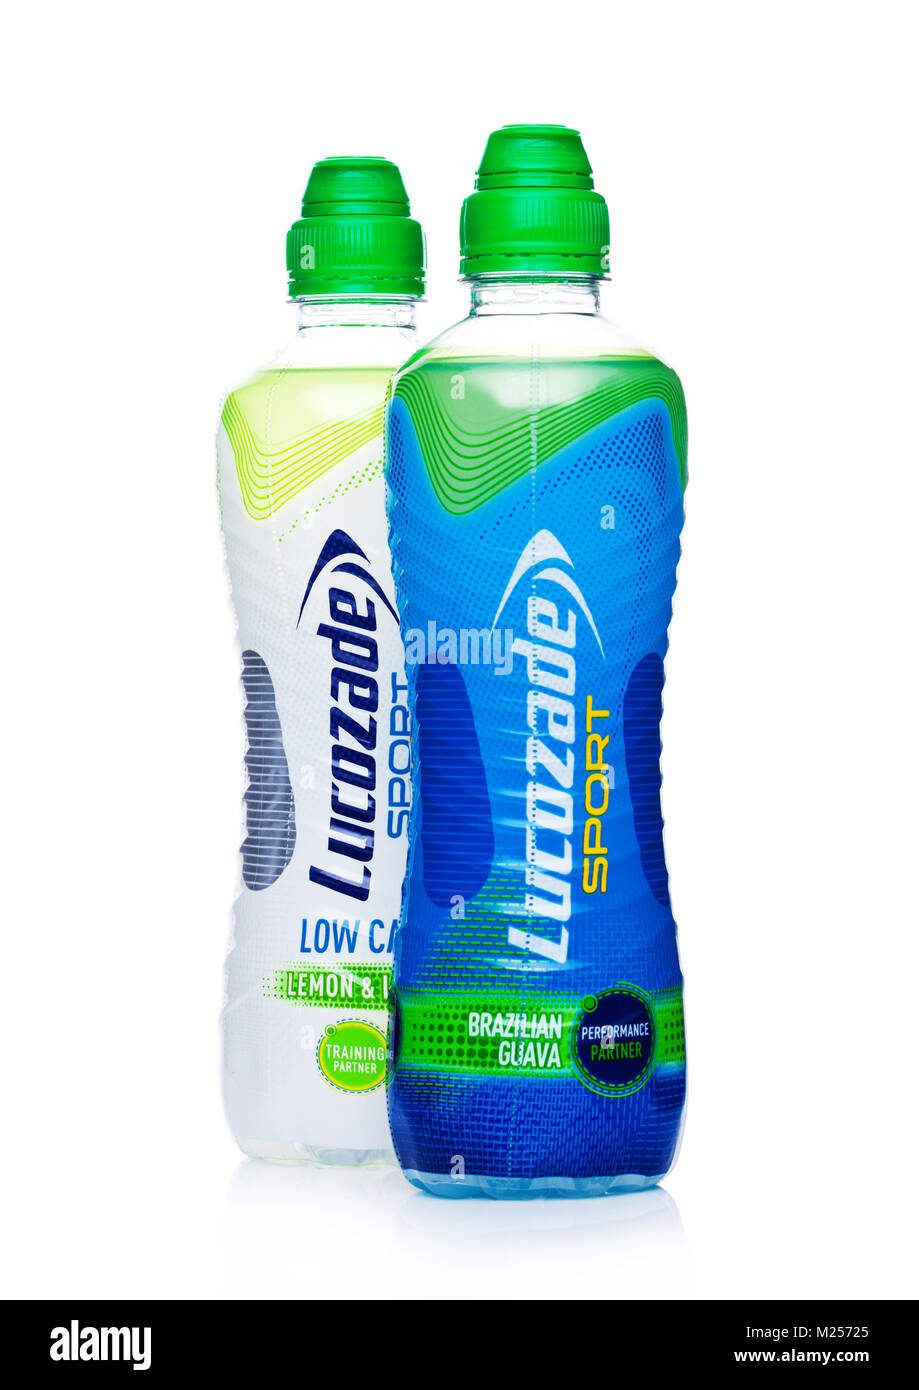 Lucozade vs Tesco Active Isotonic